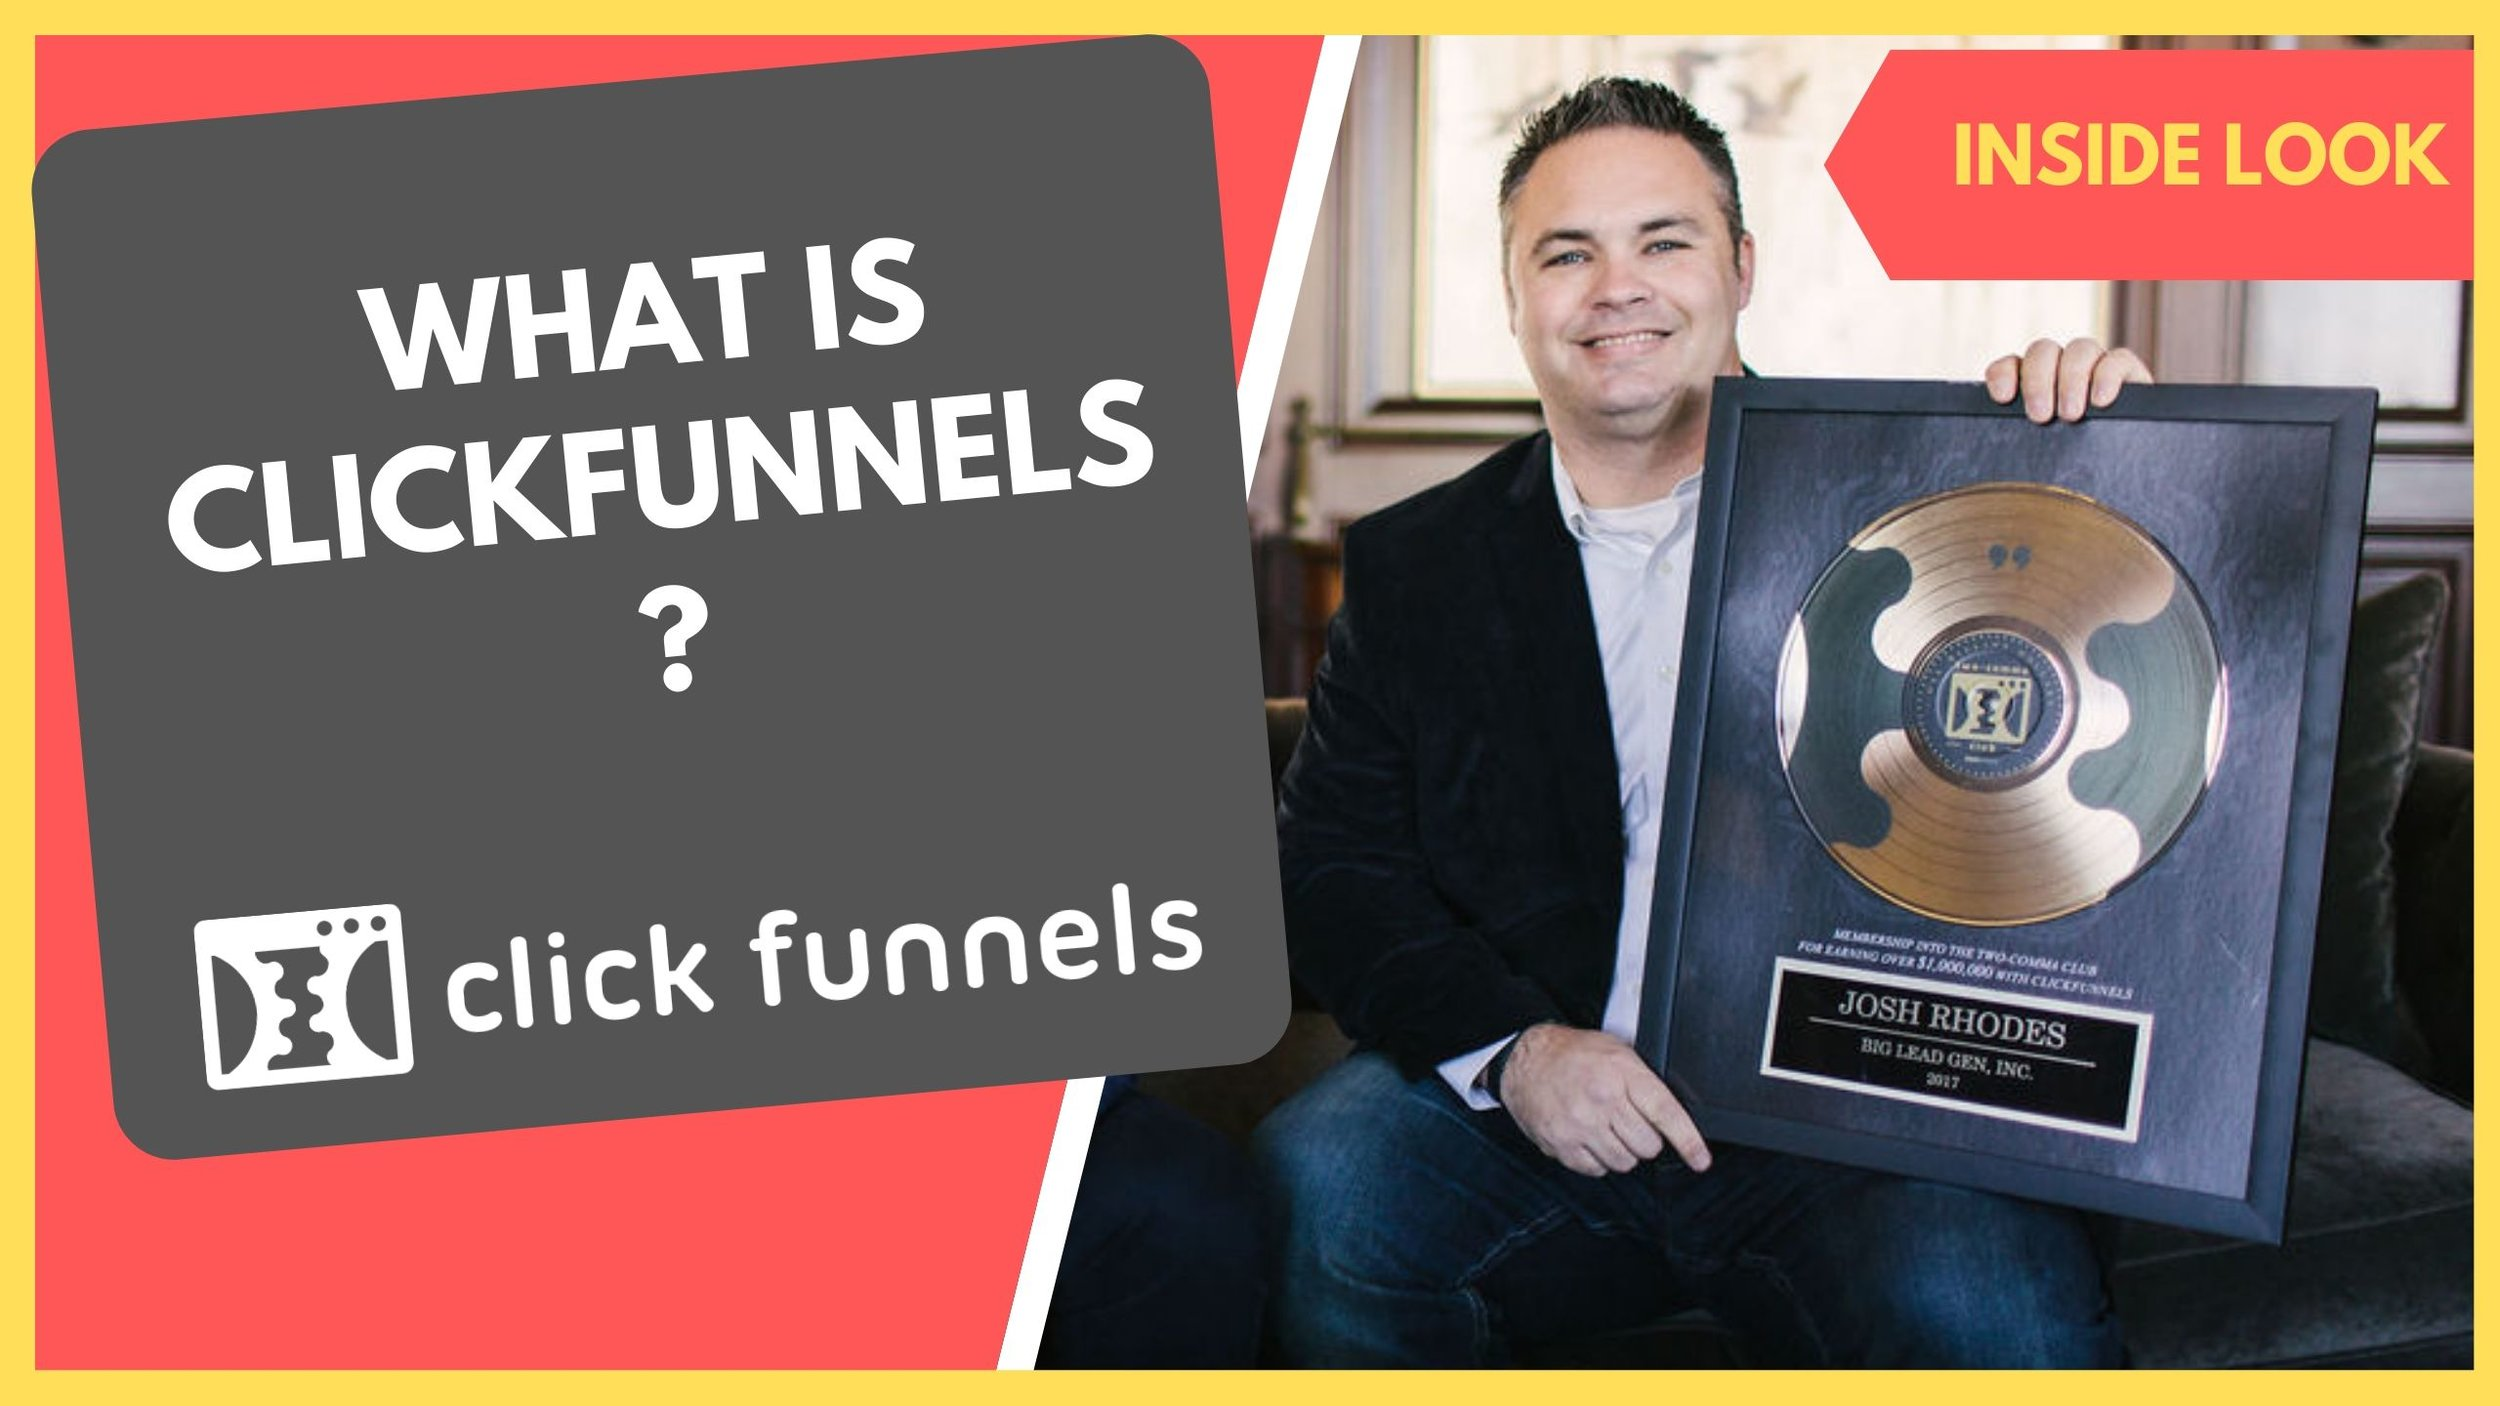 How Get Started With Clickfunnels